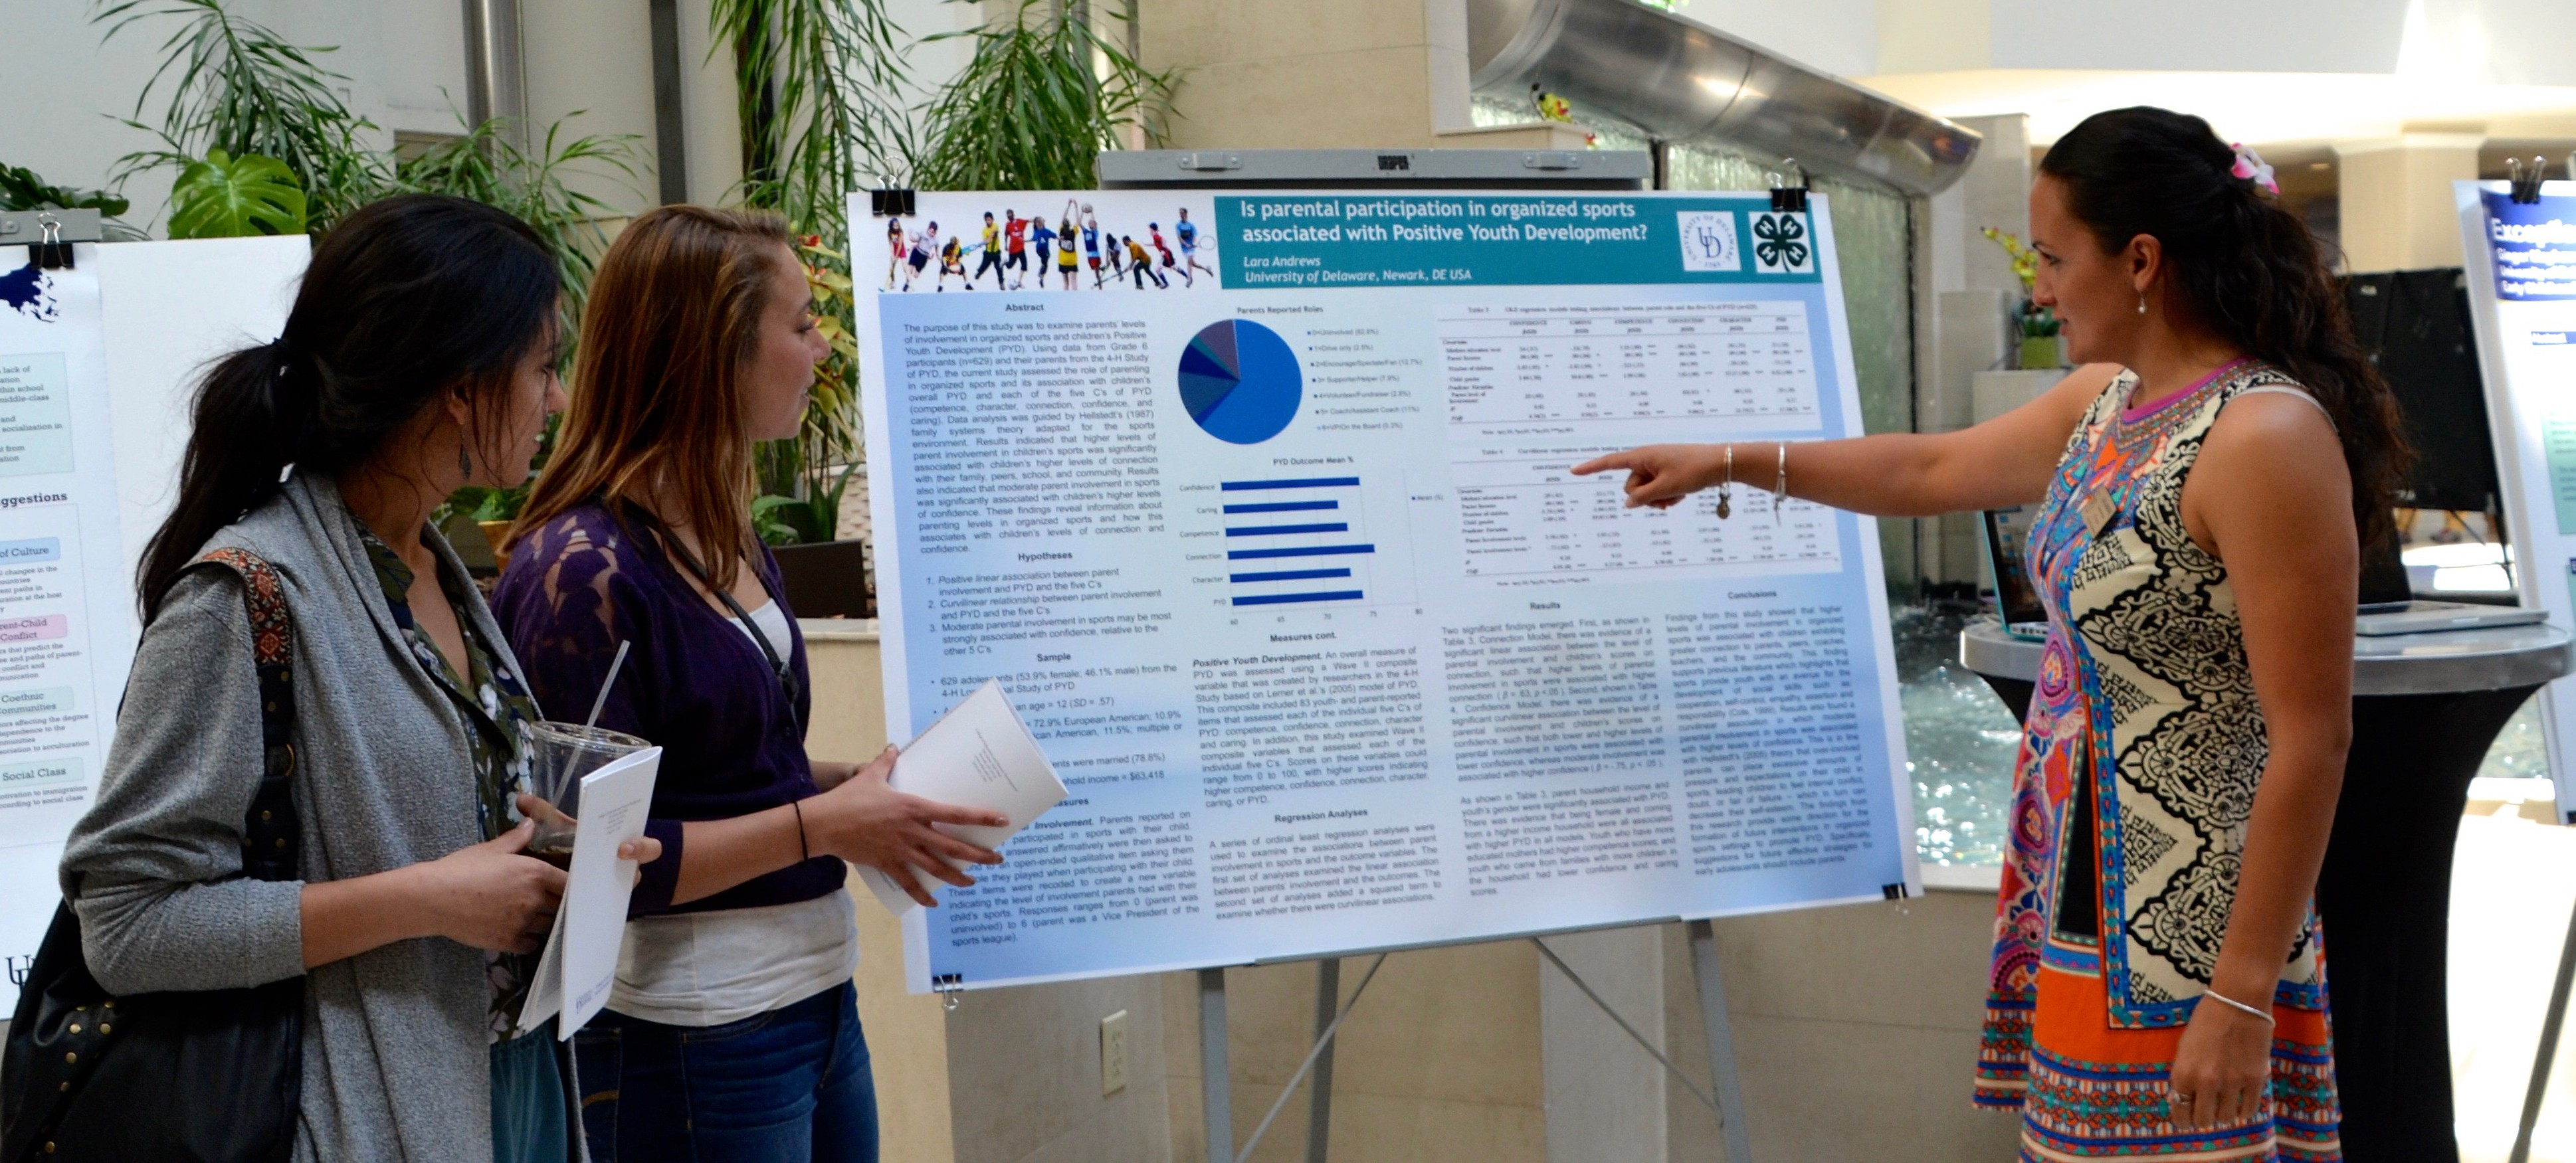 Student presents research at the Steele Symposium